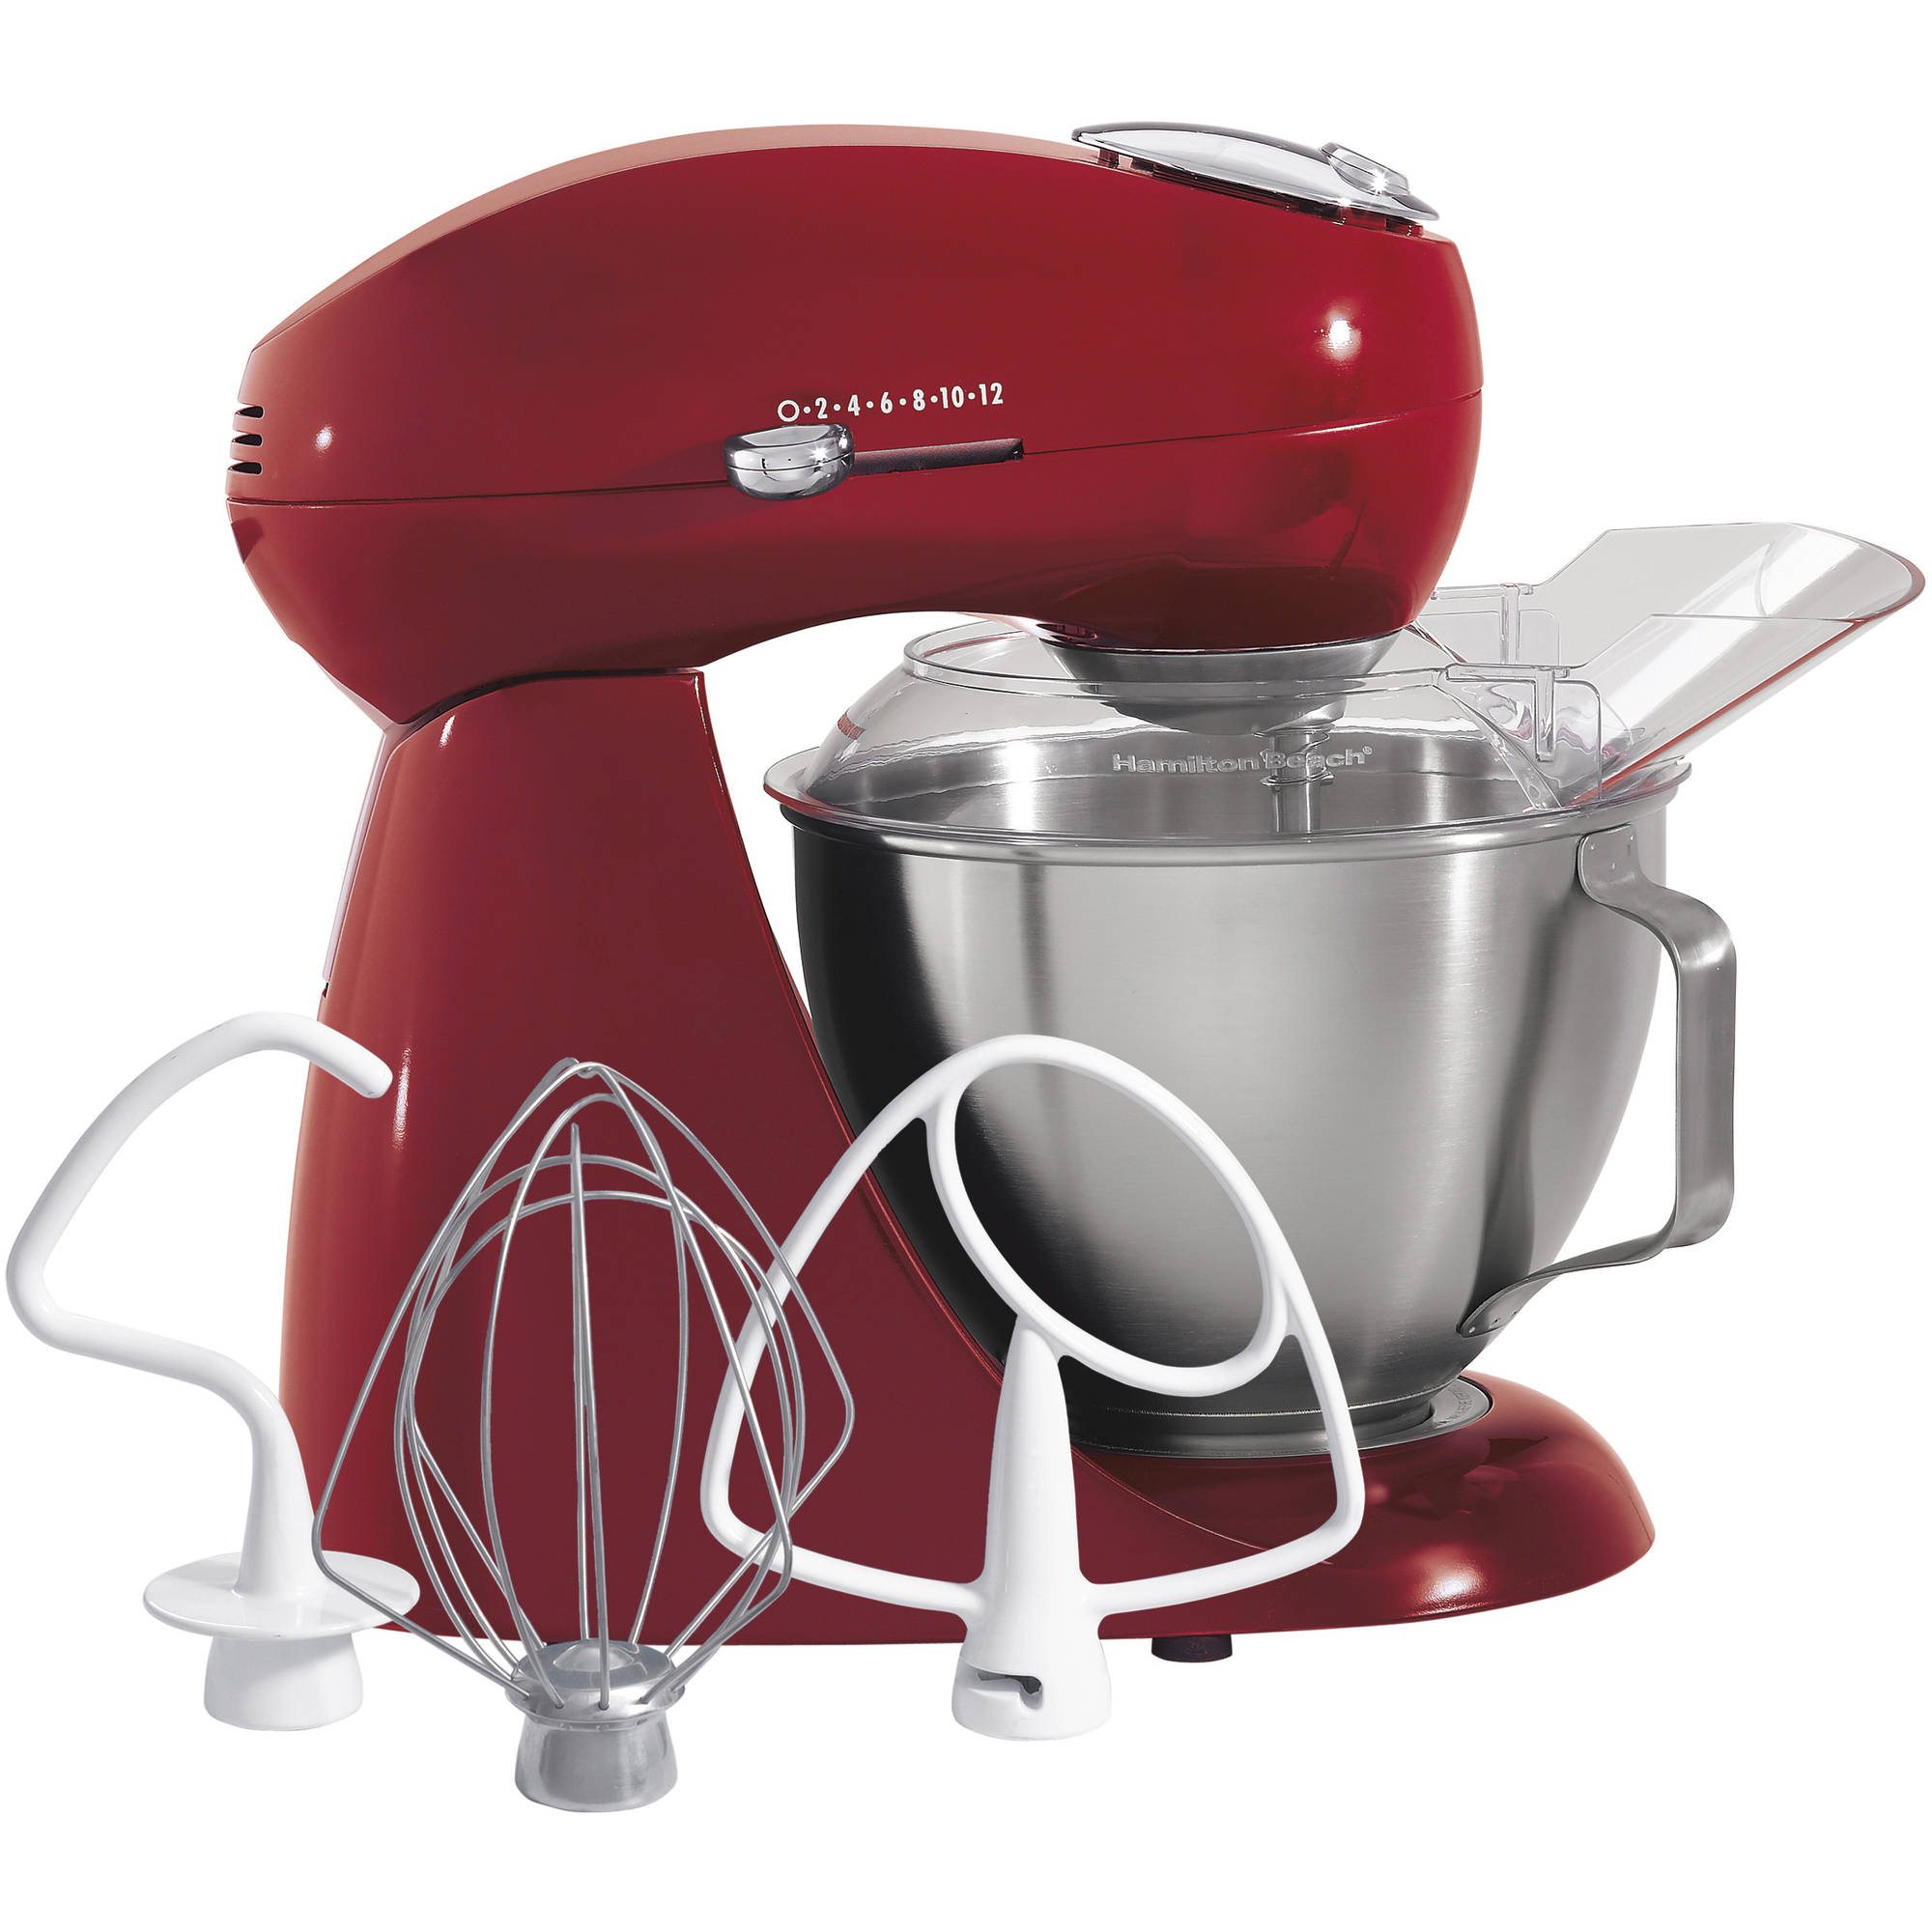 Hamilton Beach Electric 4.5 Quart Stand Mixer | Model# 63232